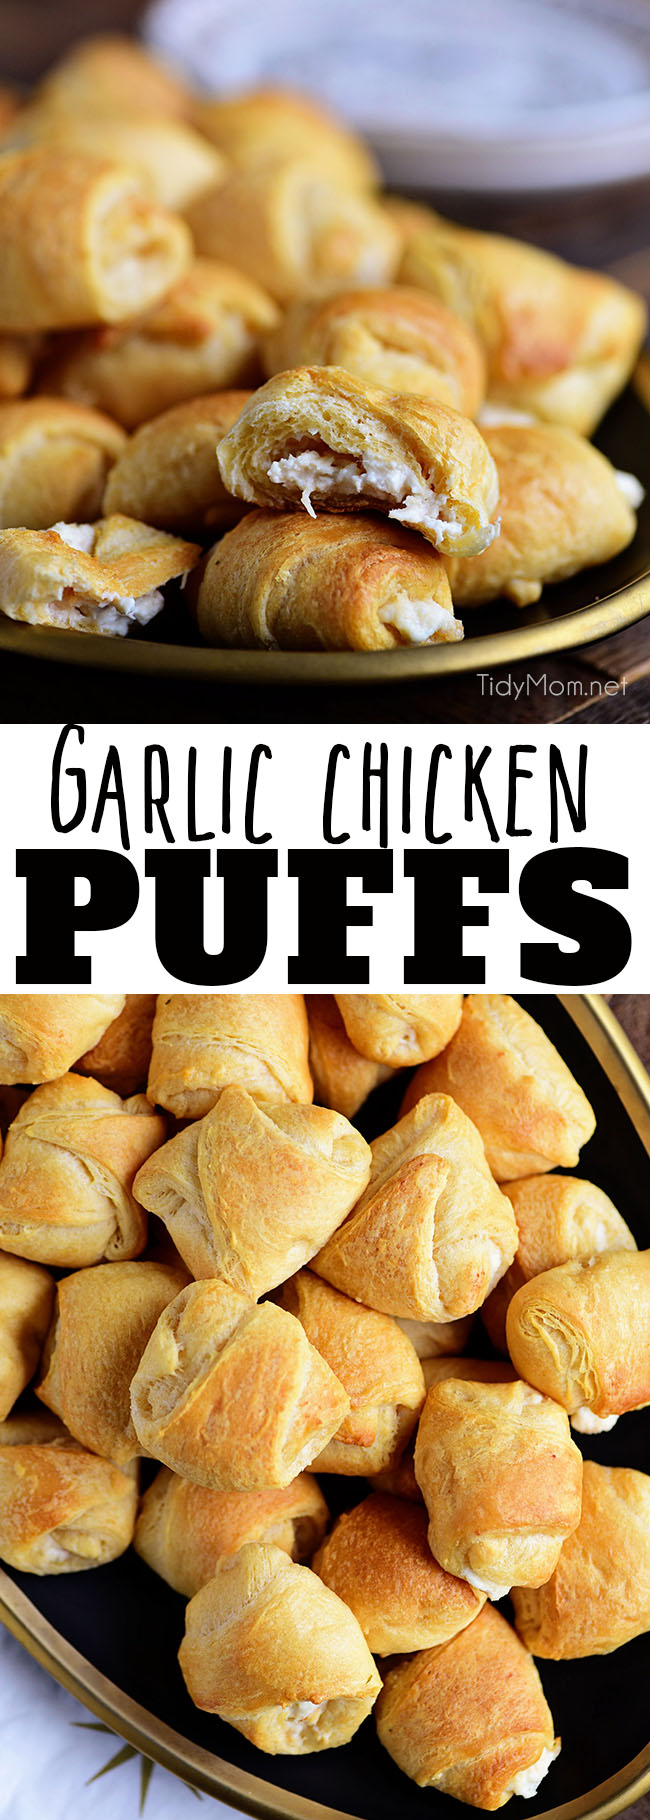 Garlic Chicken Puffs have a rich creamy garlic chicken mixture inside a croissant and baked to form a yummy appetizer. This finger food is a big crowd pleaser and great for gatherings!  Find RECIPE VIDEO at TidyMom.net #chicken #appetizer #video #recipe